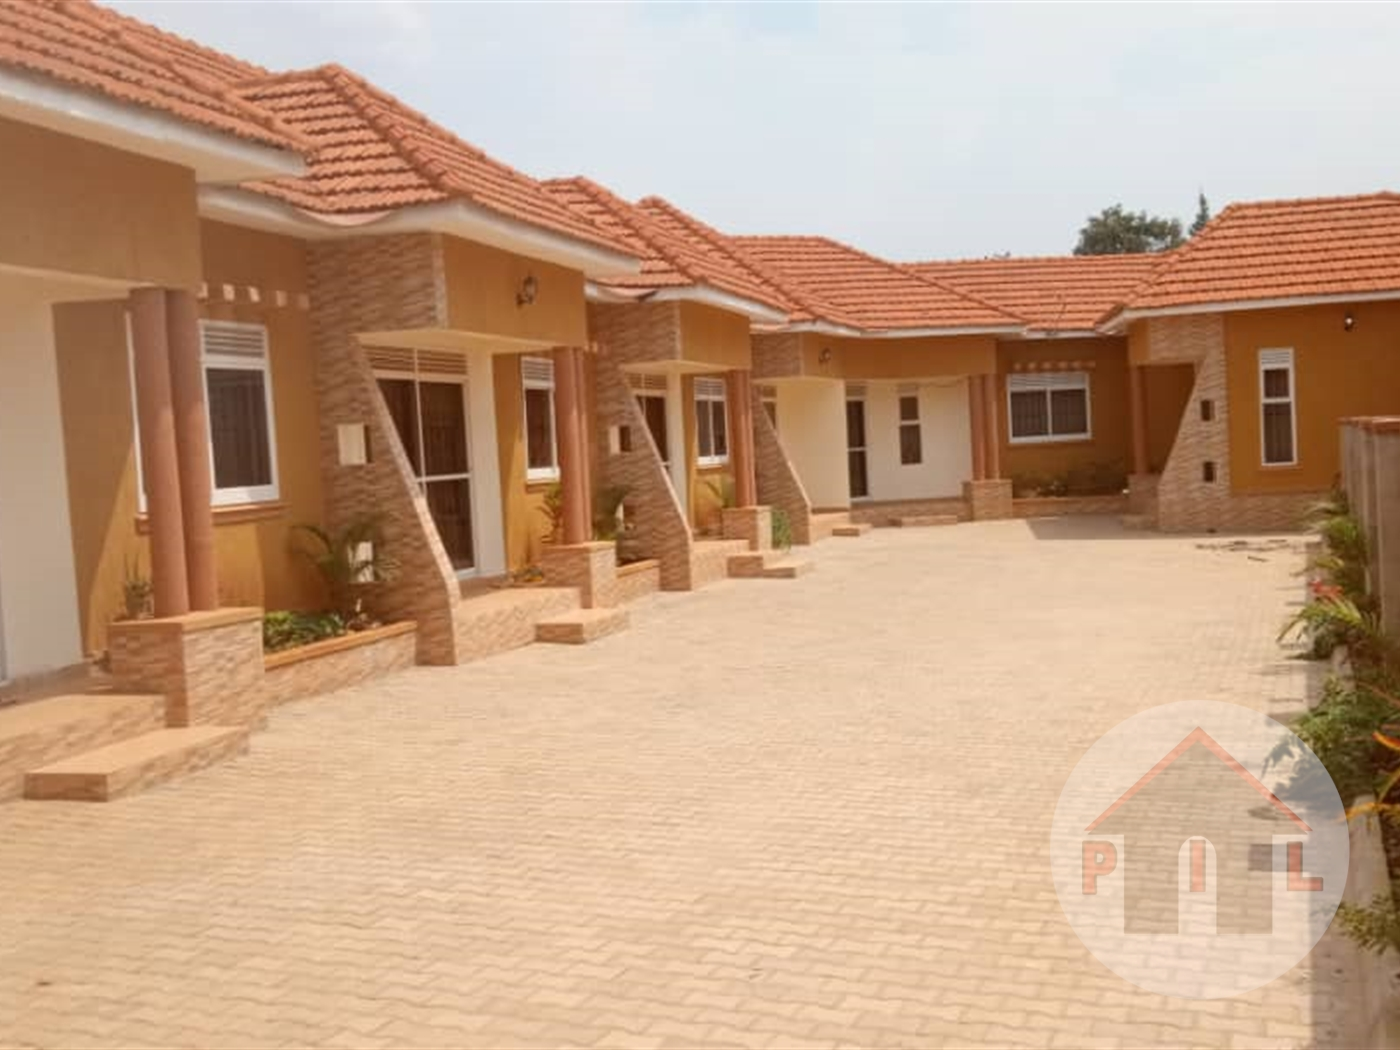 Rental units for sale in Kisaasi Kampala